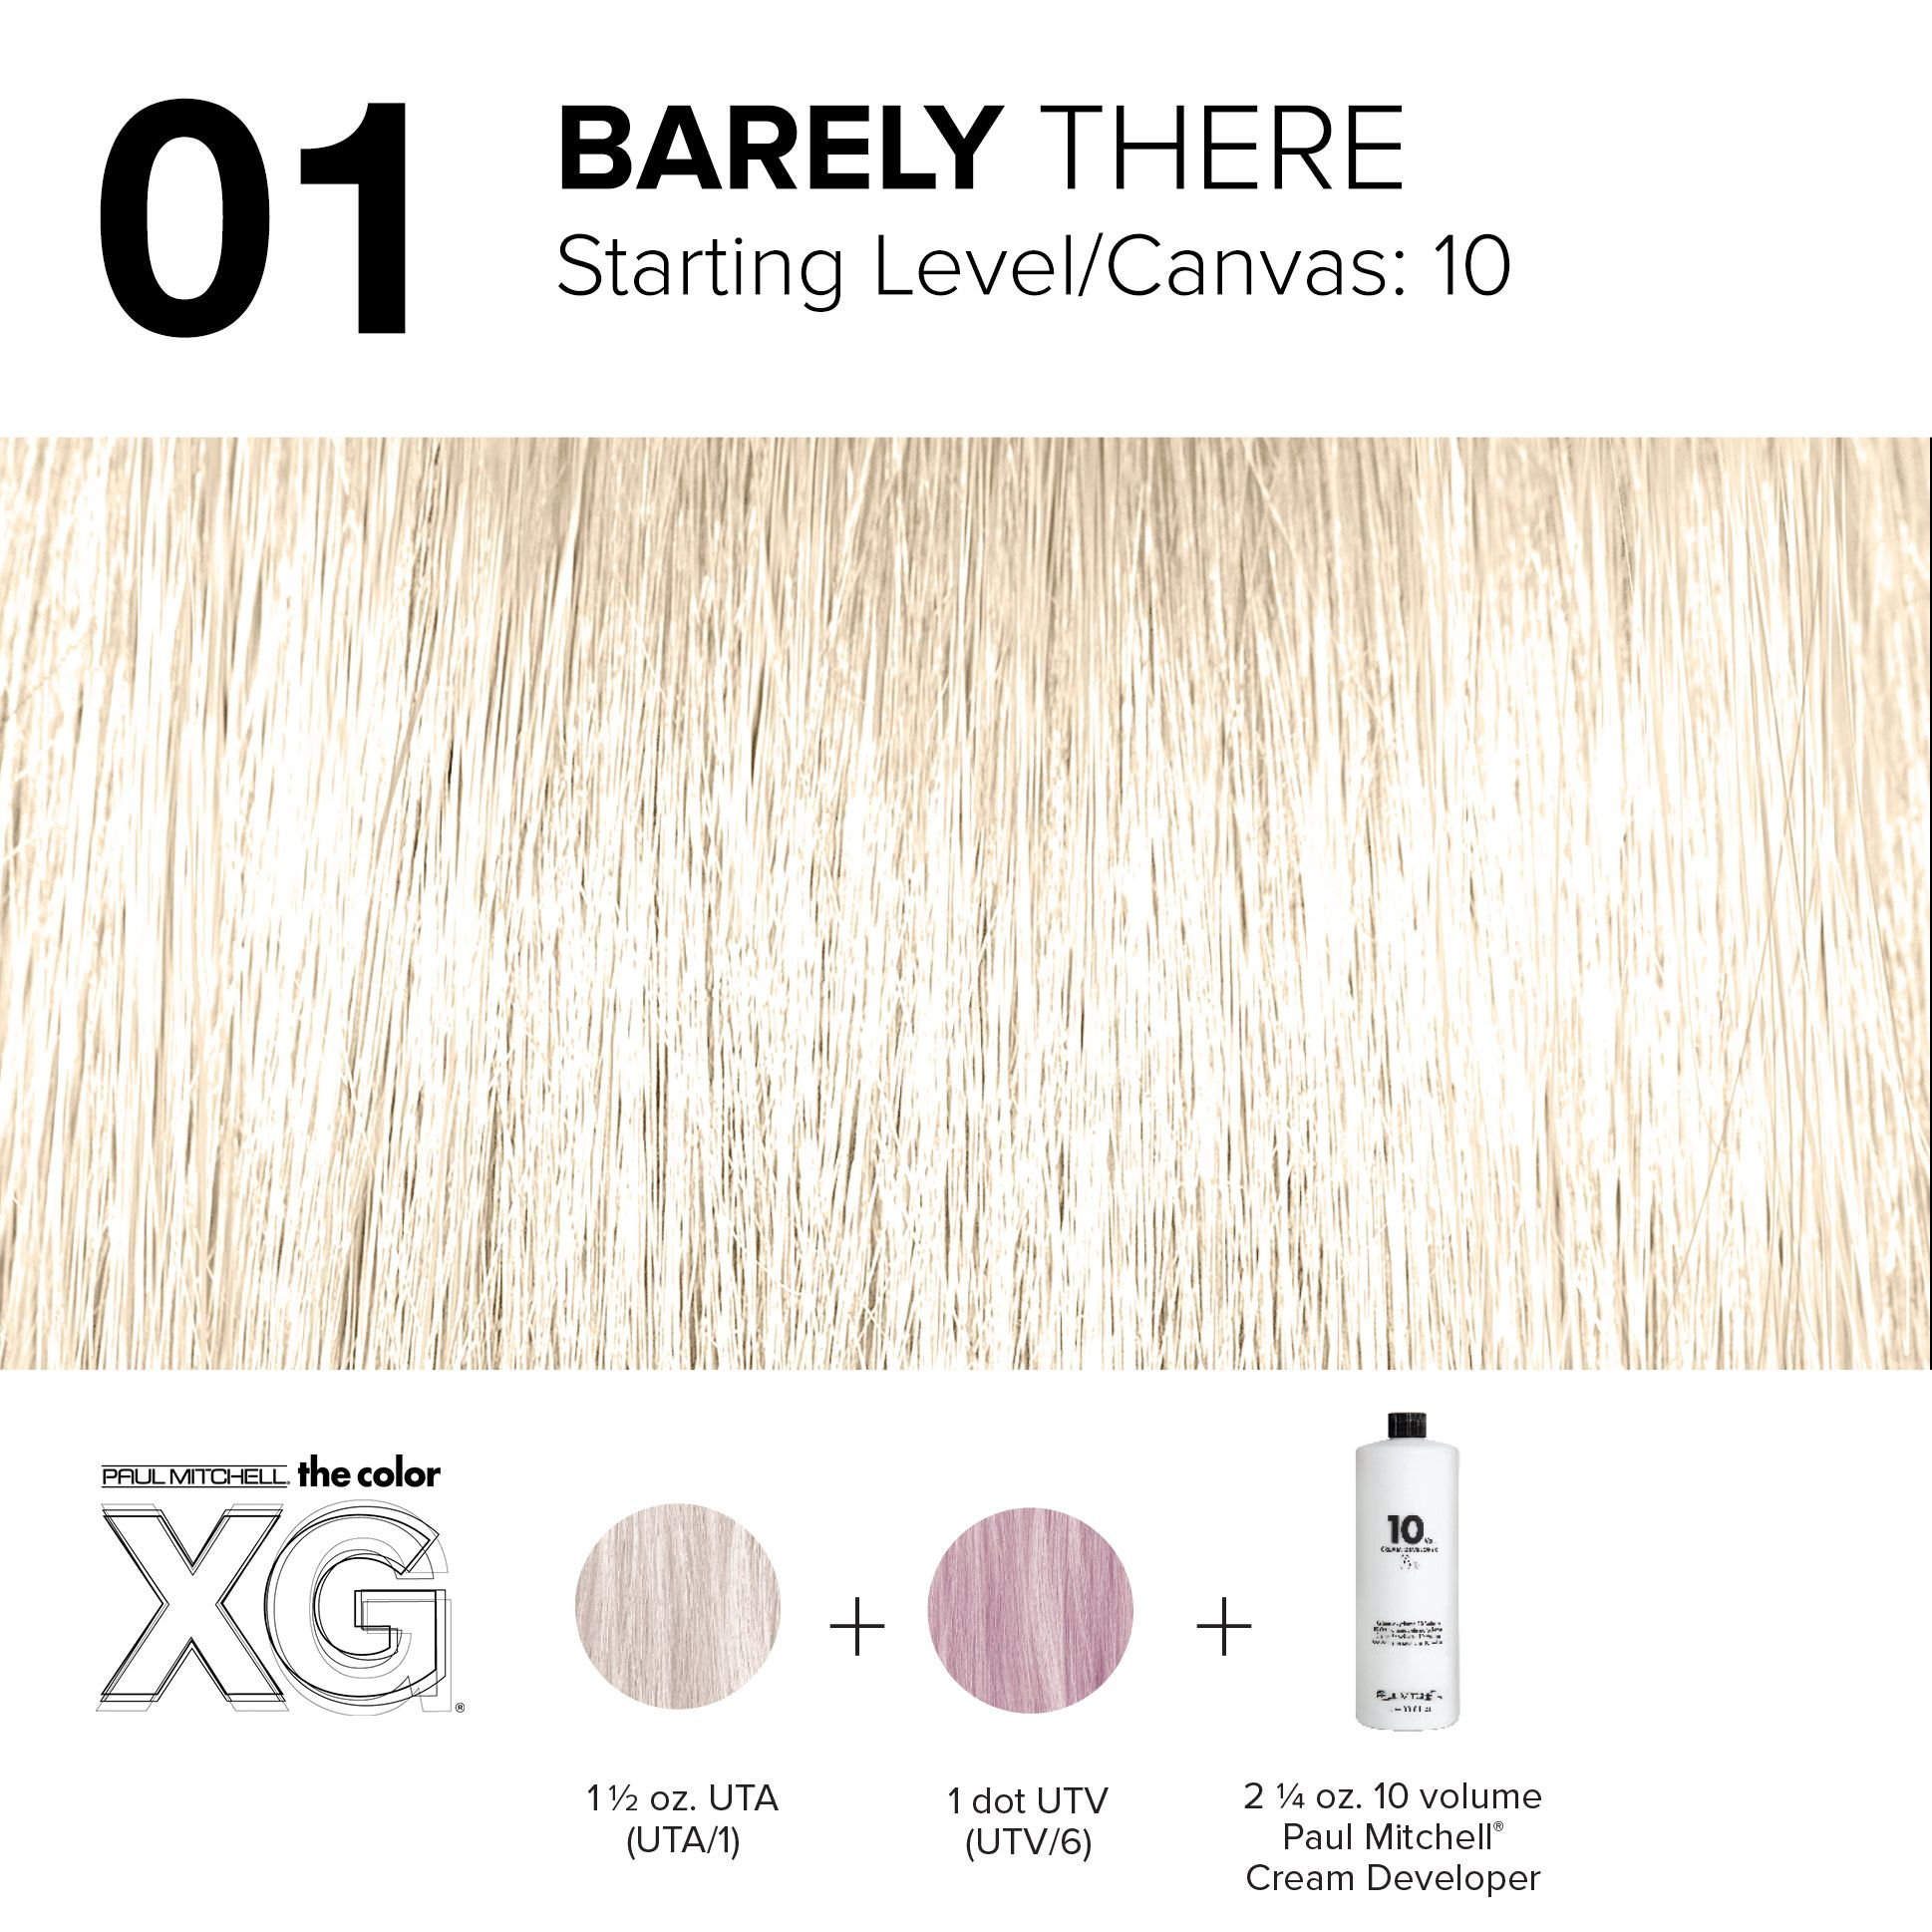 01 Barely There Paul Mitchell Color Hair Color Formulas Paul Mitchell